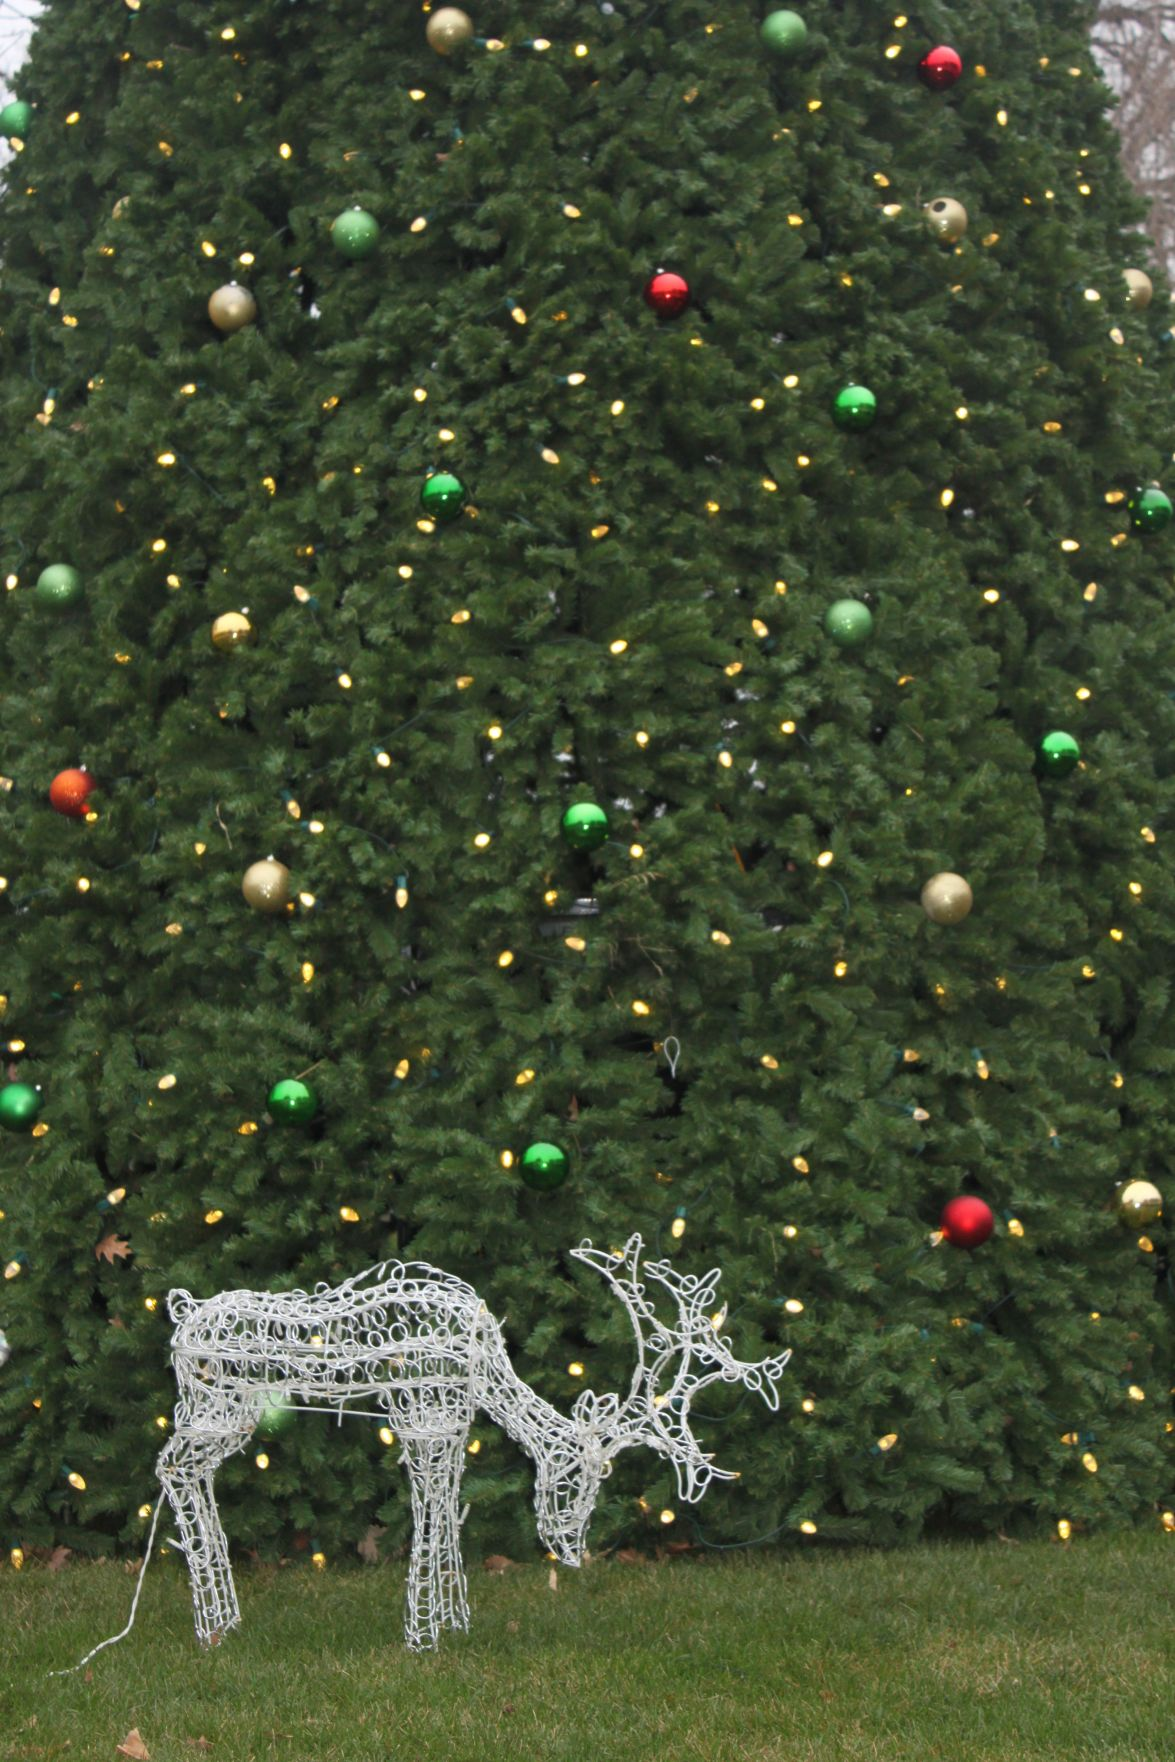 Christmas in July: No snow in sight | Local News | oskaloosa.com